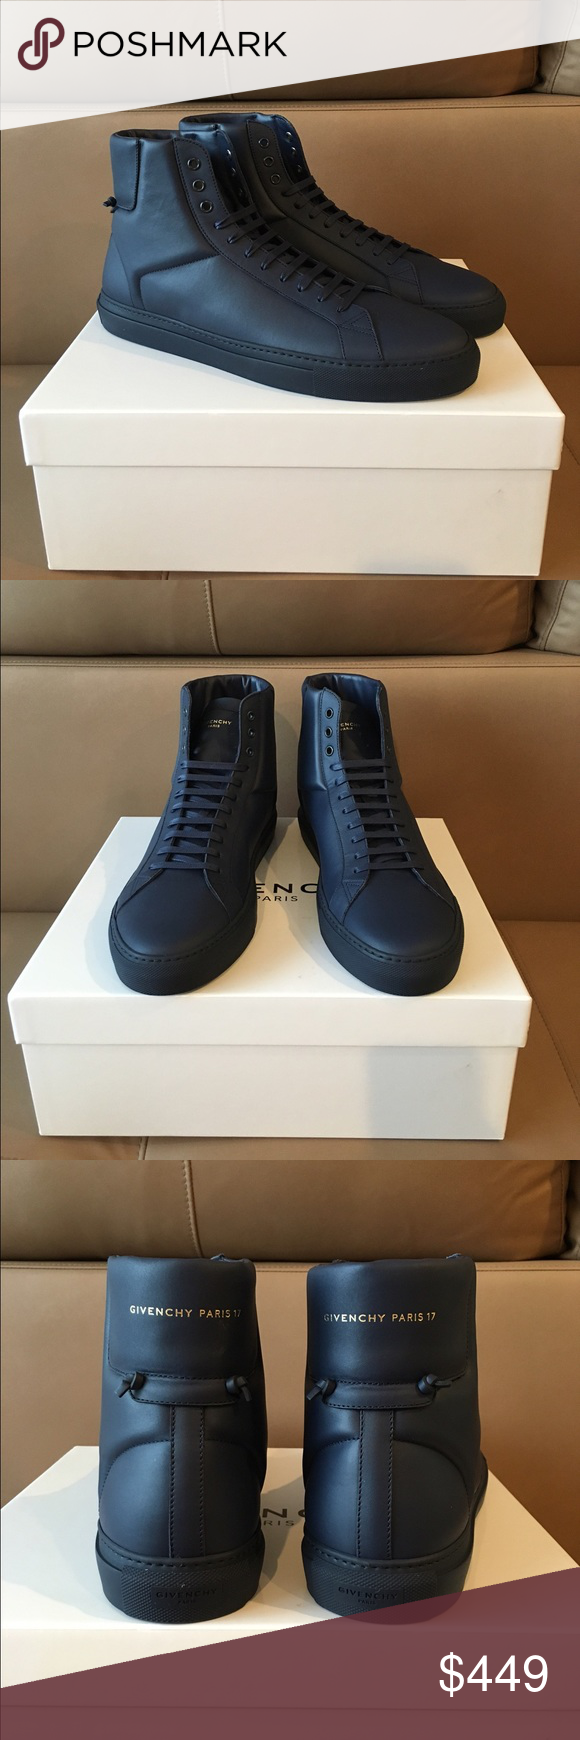 Givenchy Leather High Top Men's Sneakers 45--12 US Nib , 100% authentic Givenchy Blue leather high top sneakers in size 45--12 US . Assuming they are true to size ). No issues ) original dust bag and a box . Retail- $595 plus tax , current season . Sorry , no trading -:(. Thanks ! Givenchy Shoes Sneakers